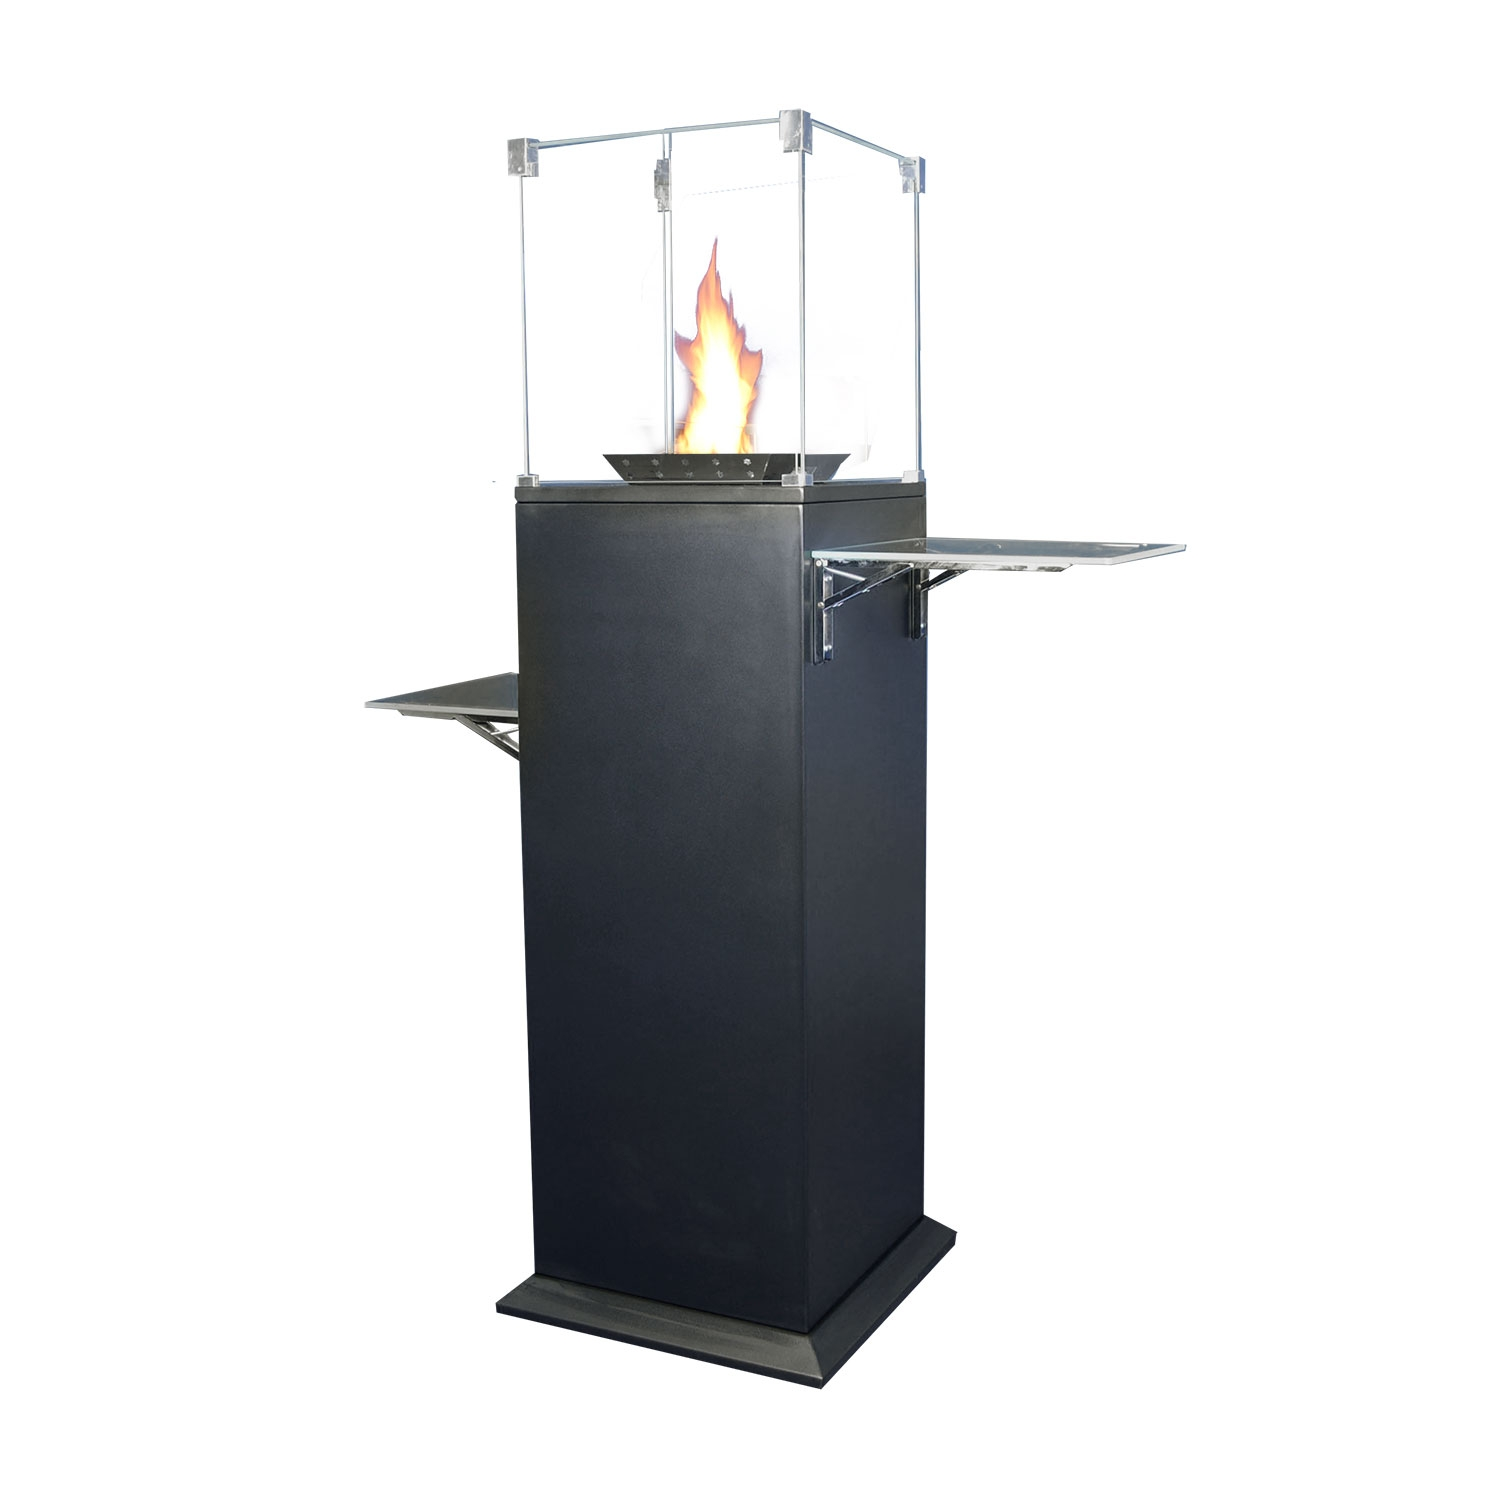 Qogir-516 High Base Outdoor Gas Fire ideal for restaurants, pubs and bistros